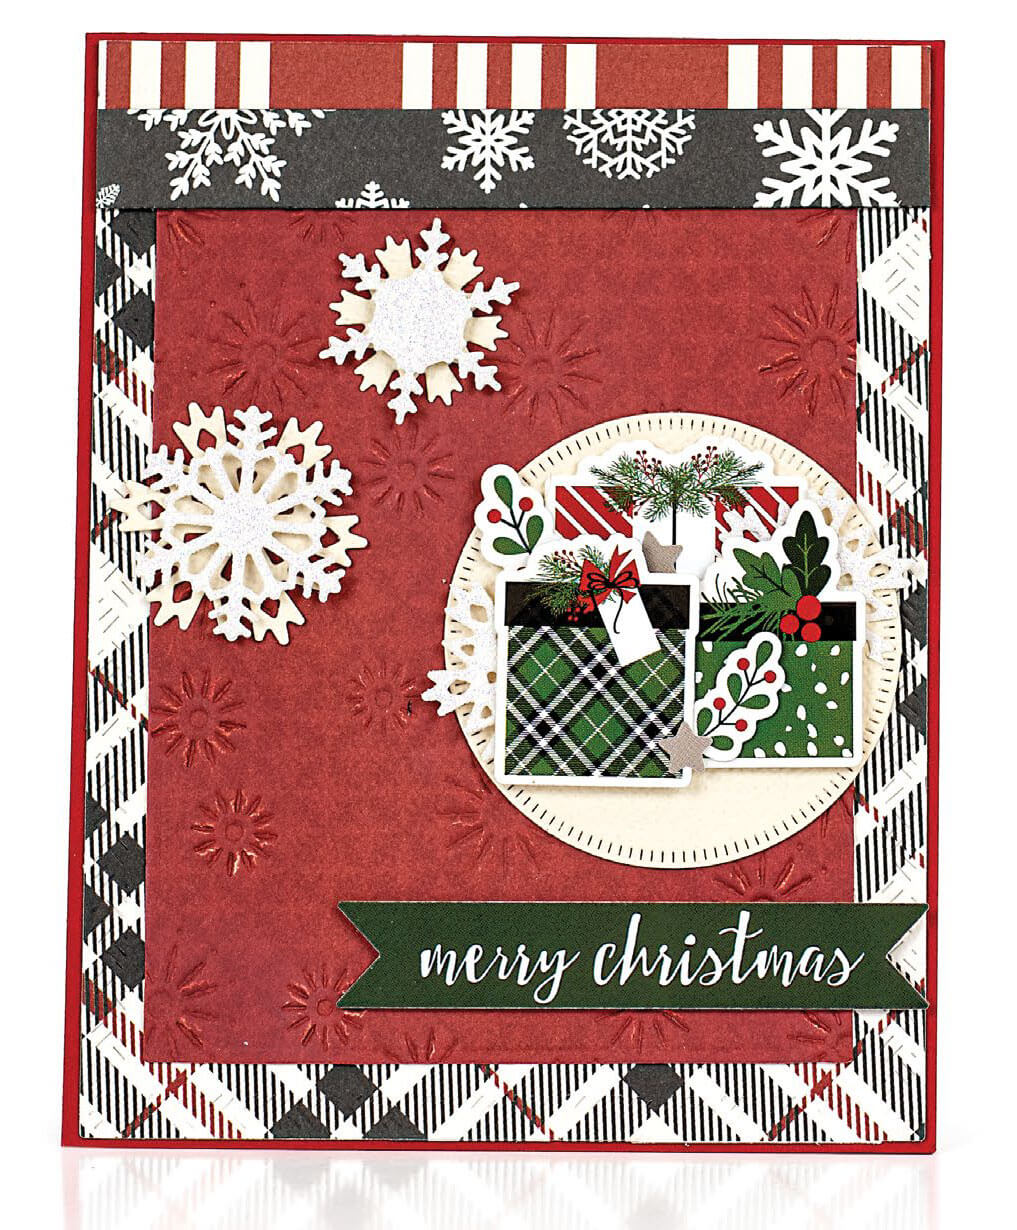 Scrapbook & Cards Today - Winter 2019 - Merry Christmas card by Consuelo Morales